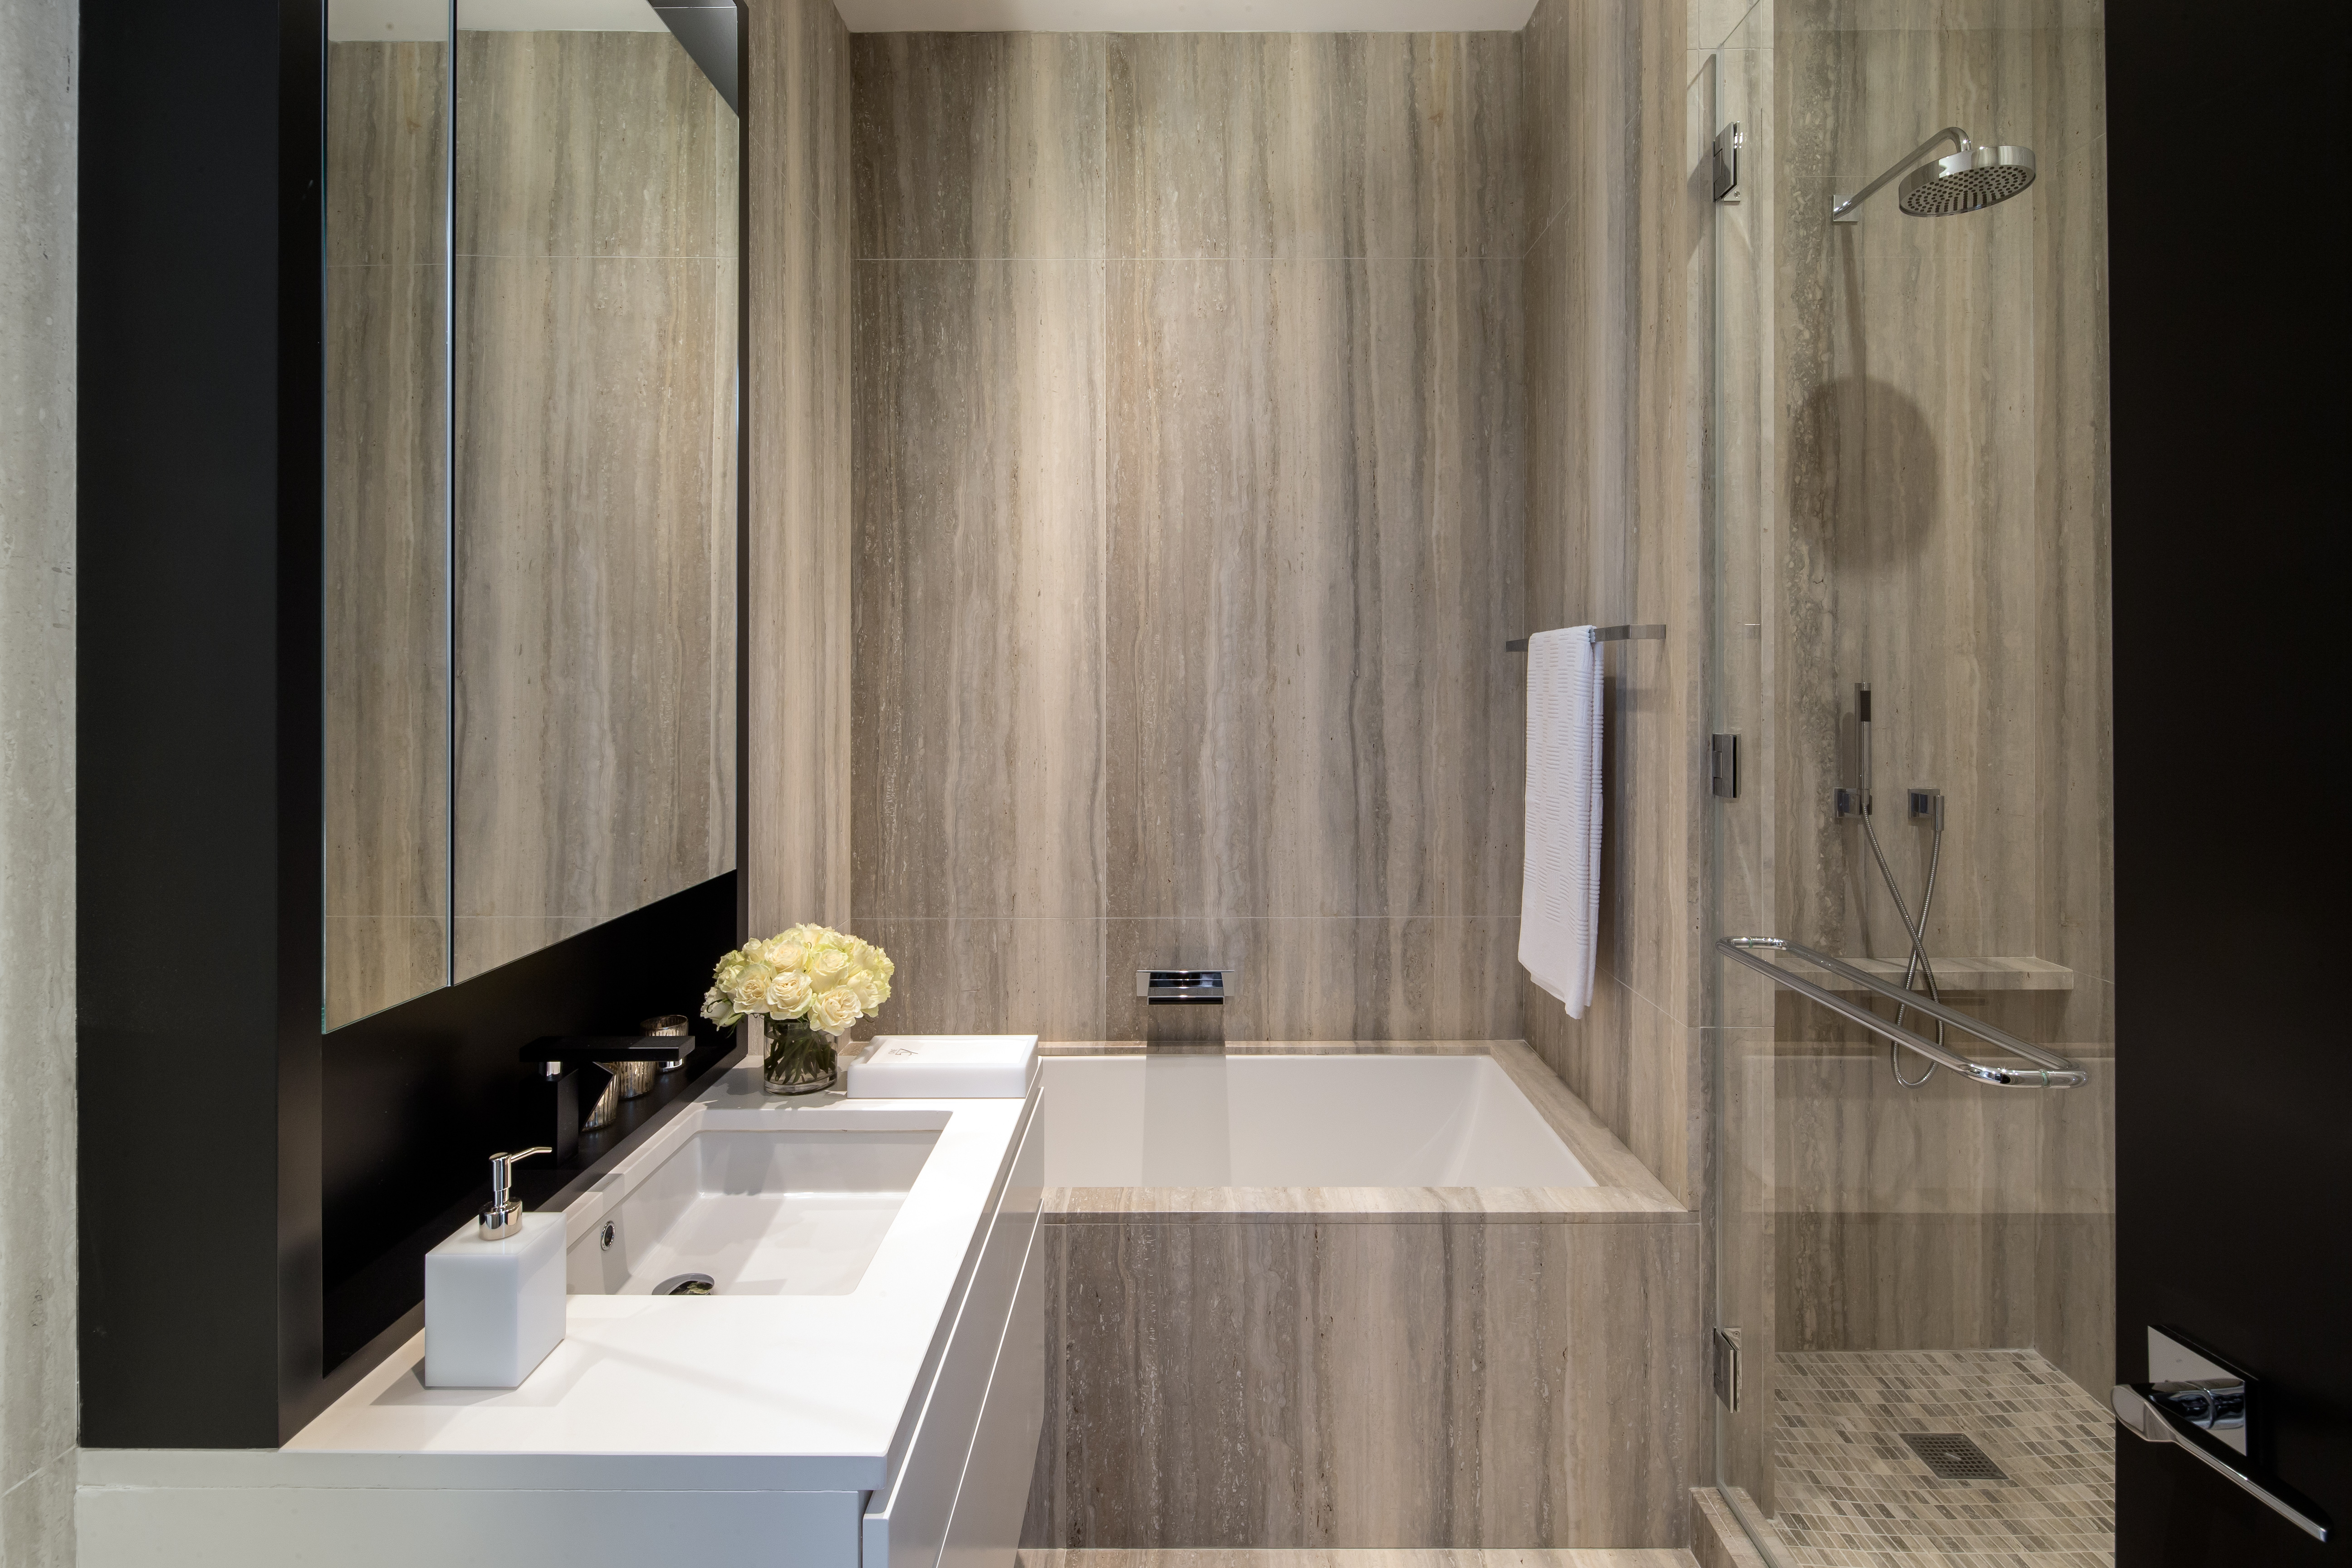 Bathroom Faucets Nyc graff furnishes luxury one57 bathrooms, nyc :: press releases